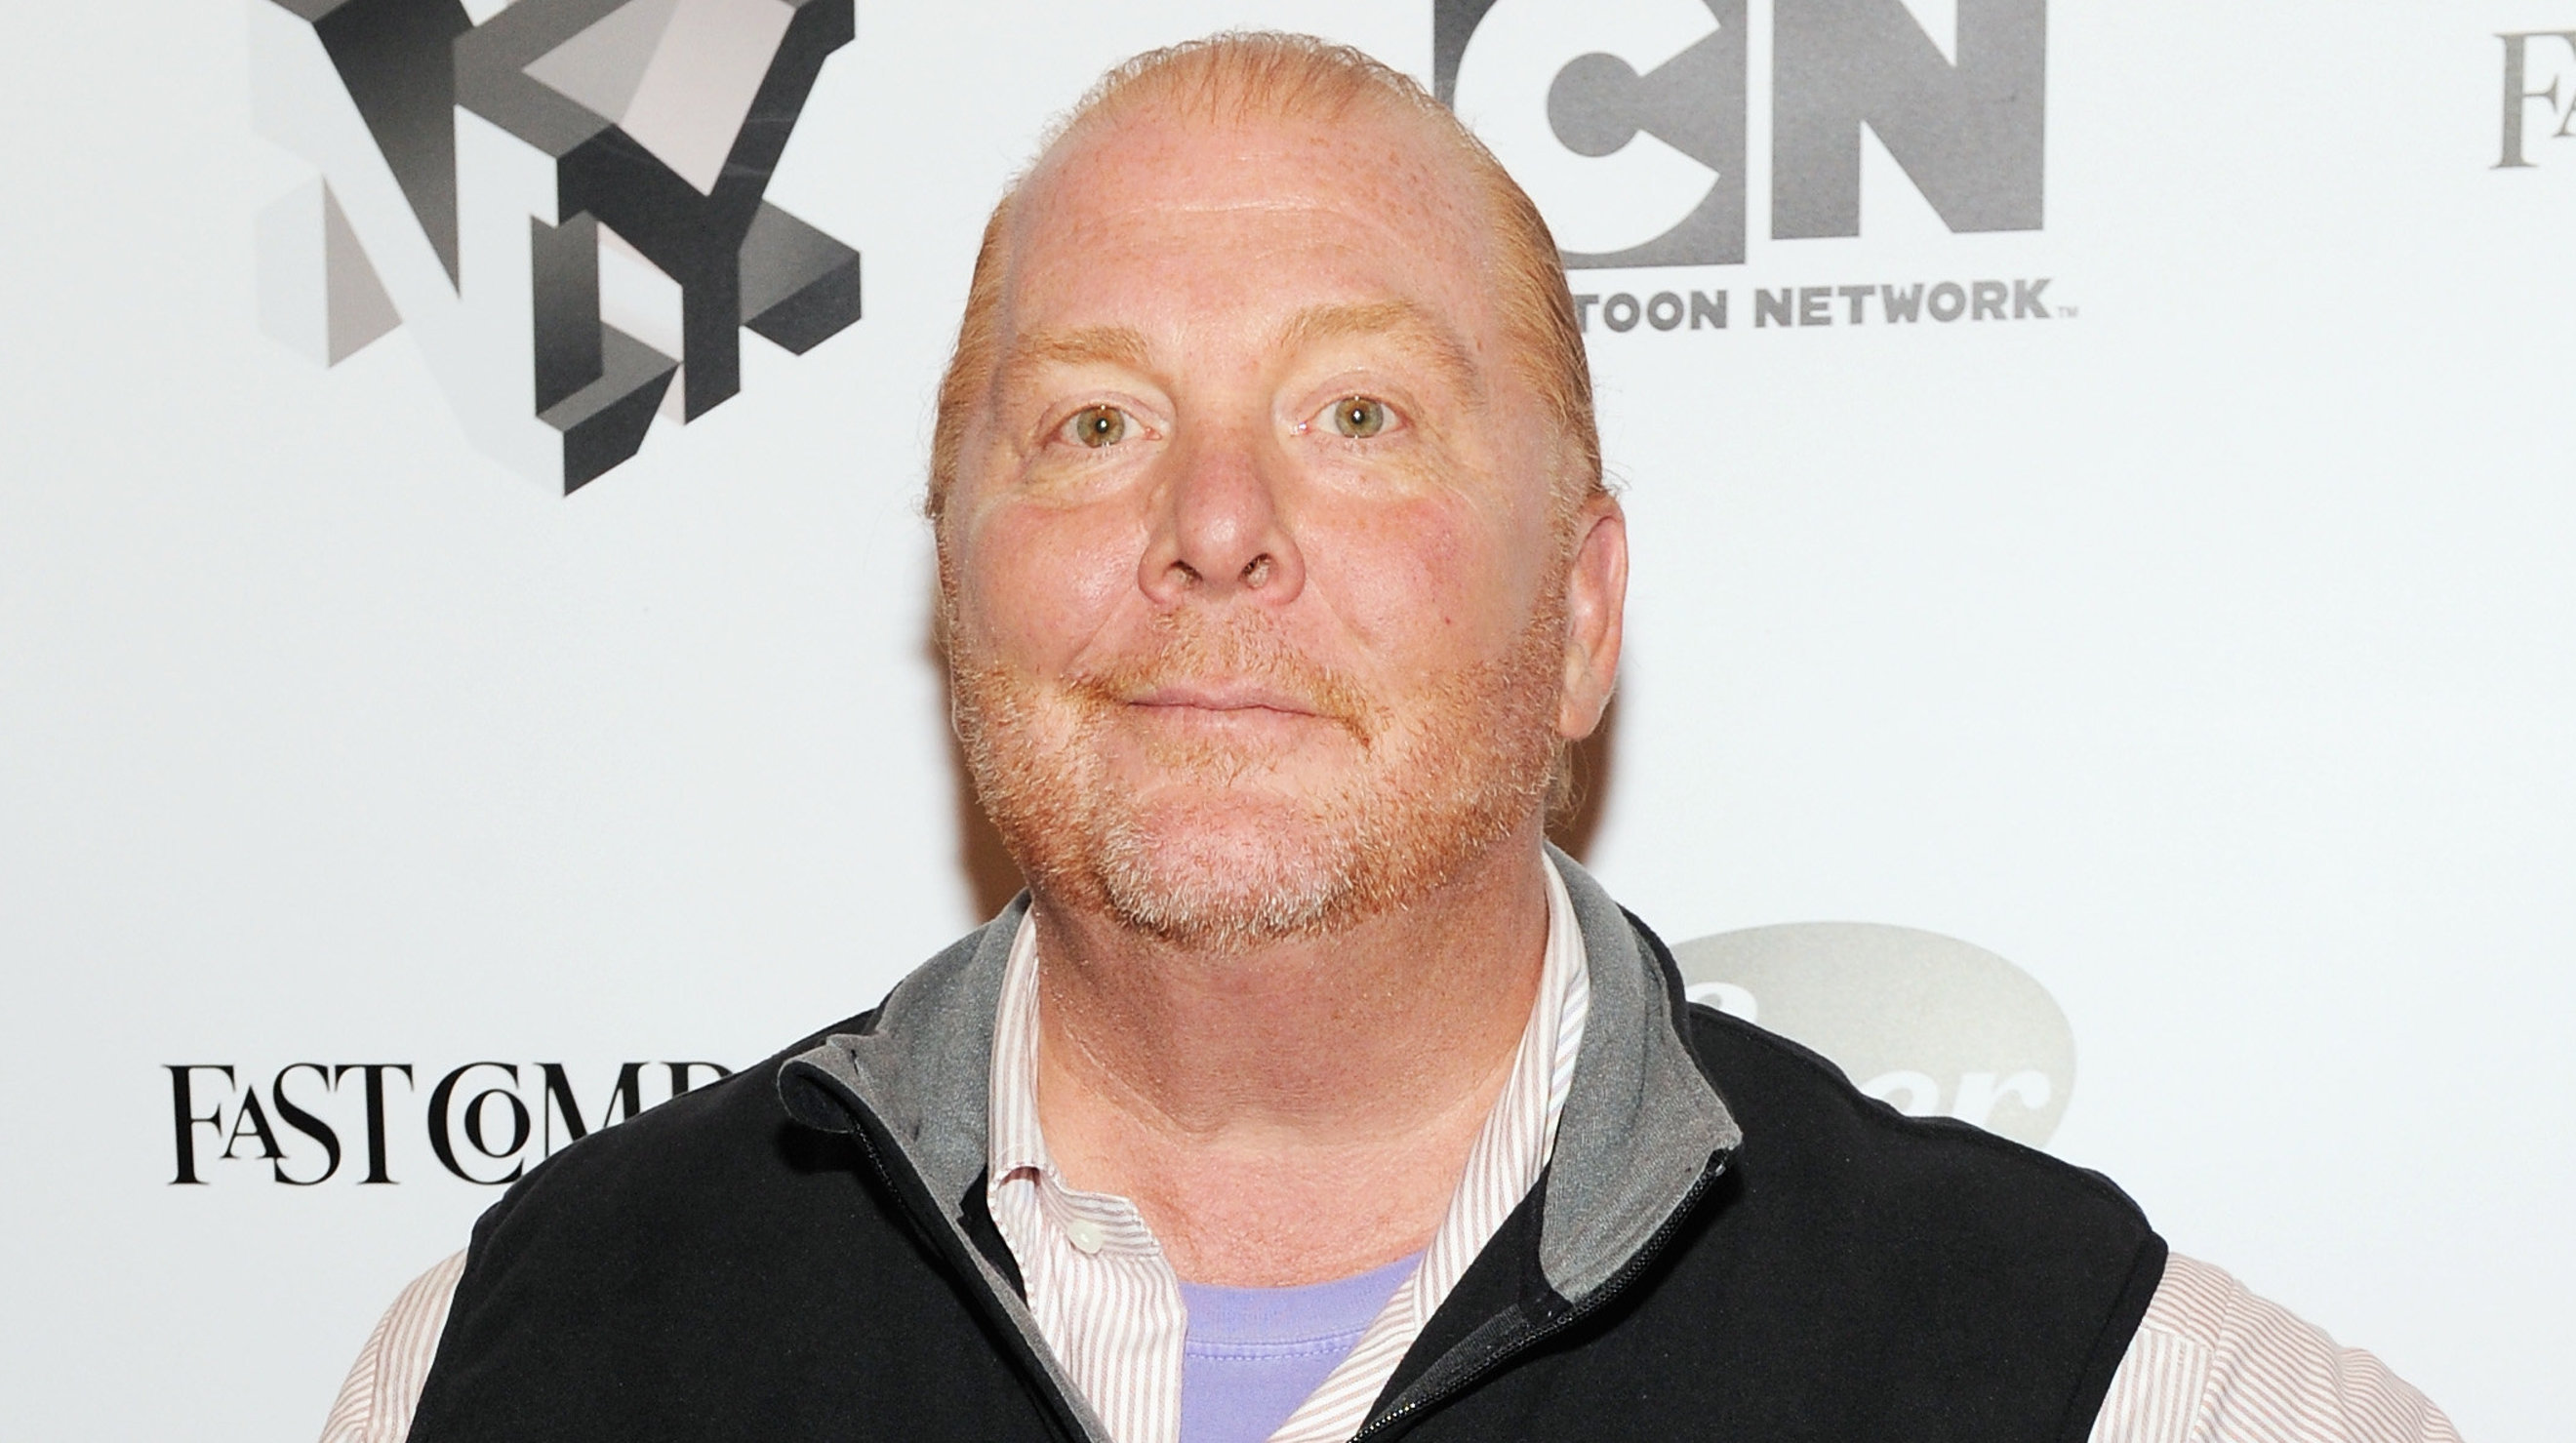 Mario Batali Apologizes For Sexual Harassment With Cinnamon Rolls